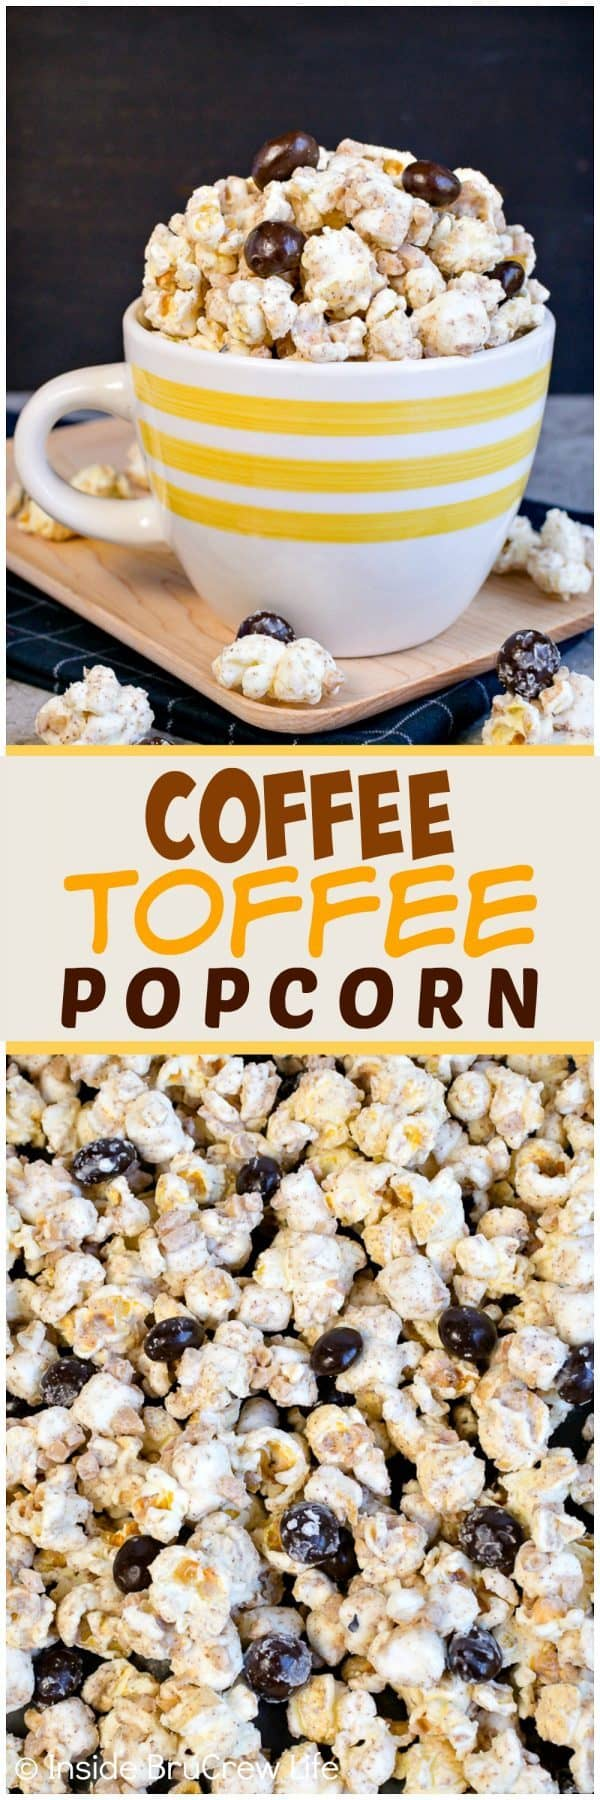 Coffee Toffee Popcorn - white chocolate and espresso powder gives this easy no bake snack mix an awesome coffee flavor. Toffee bits & coffee beans add a fun twist. Make this easy recipe to munch on during movie nights. #coffee #snackmix #popcorn #toffee #nobake #whitechocolate #coffeebeans